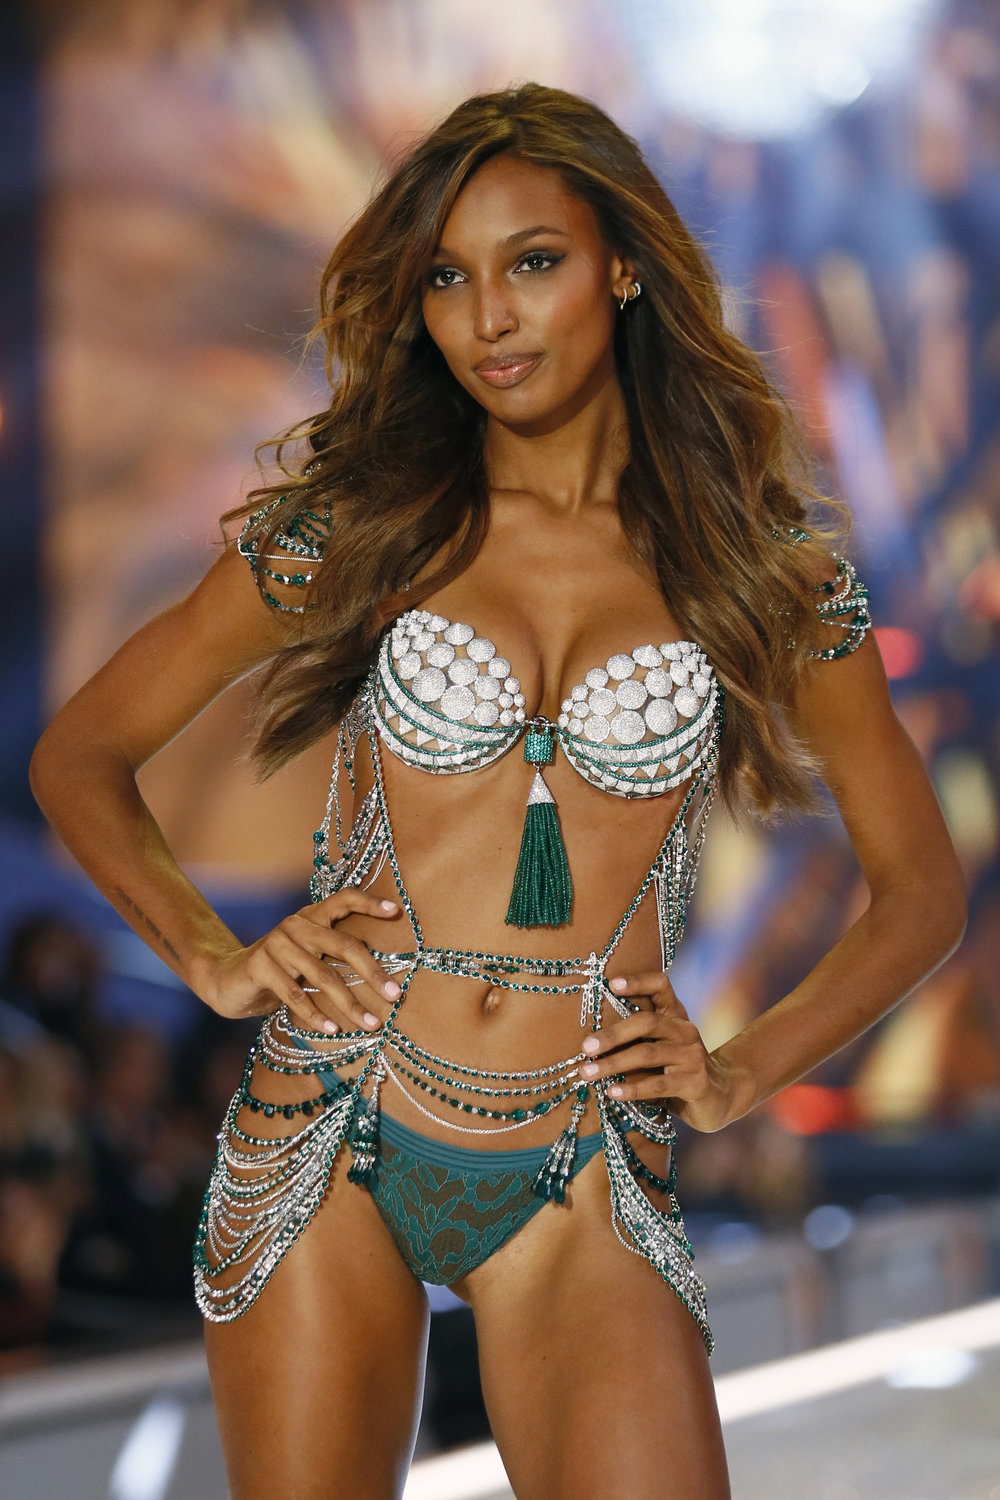 Model Jasmine Tookes displays a $3 million Fantasy Bra during Victoria's Secret Fashion Show (AP Photo)